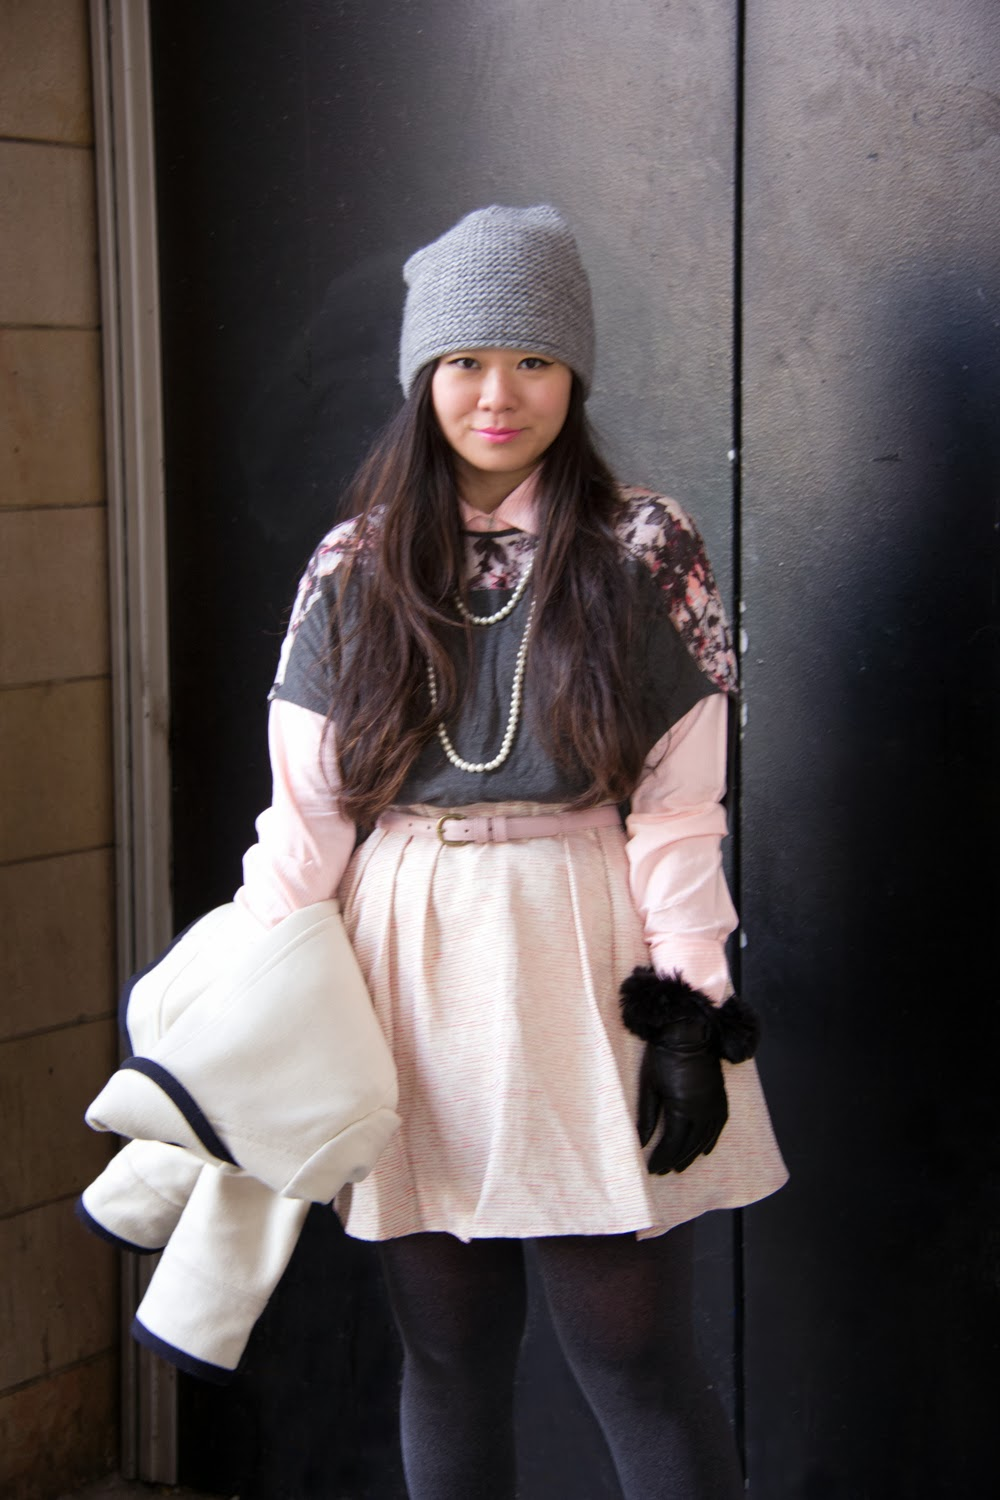 JCrew-Peacoat, Pastel-Pink-Skater-Skirt, LeChateau-Gloves, Pearls-Necklace